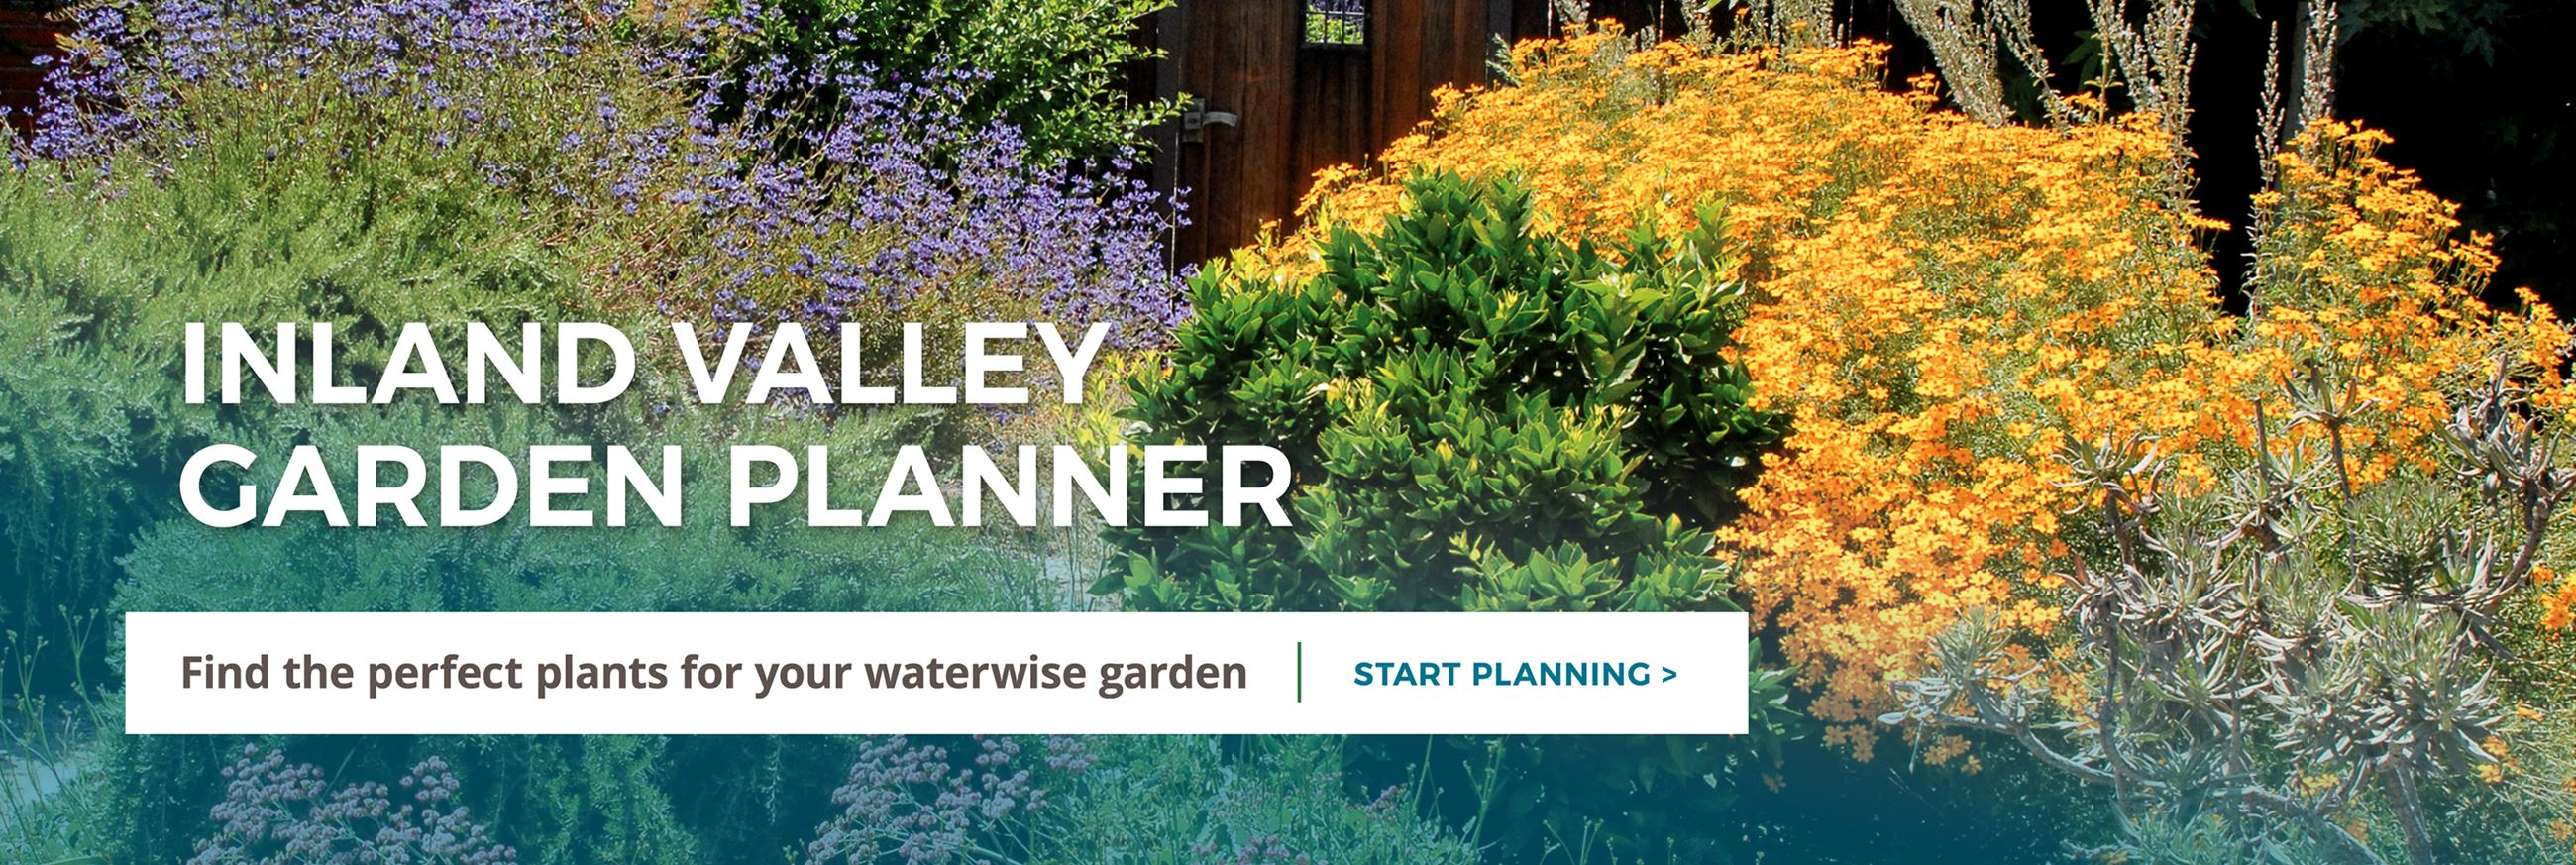 Inland Valley Garden Planner. Find the perfect plants for your waterwise garden. Click to start plan